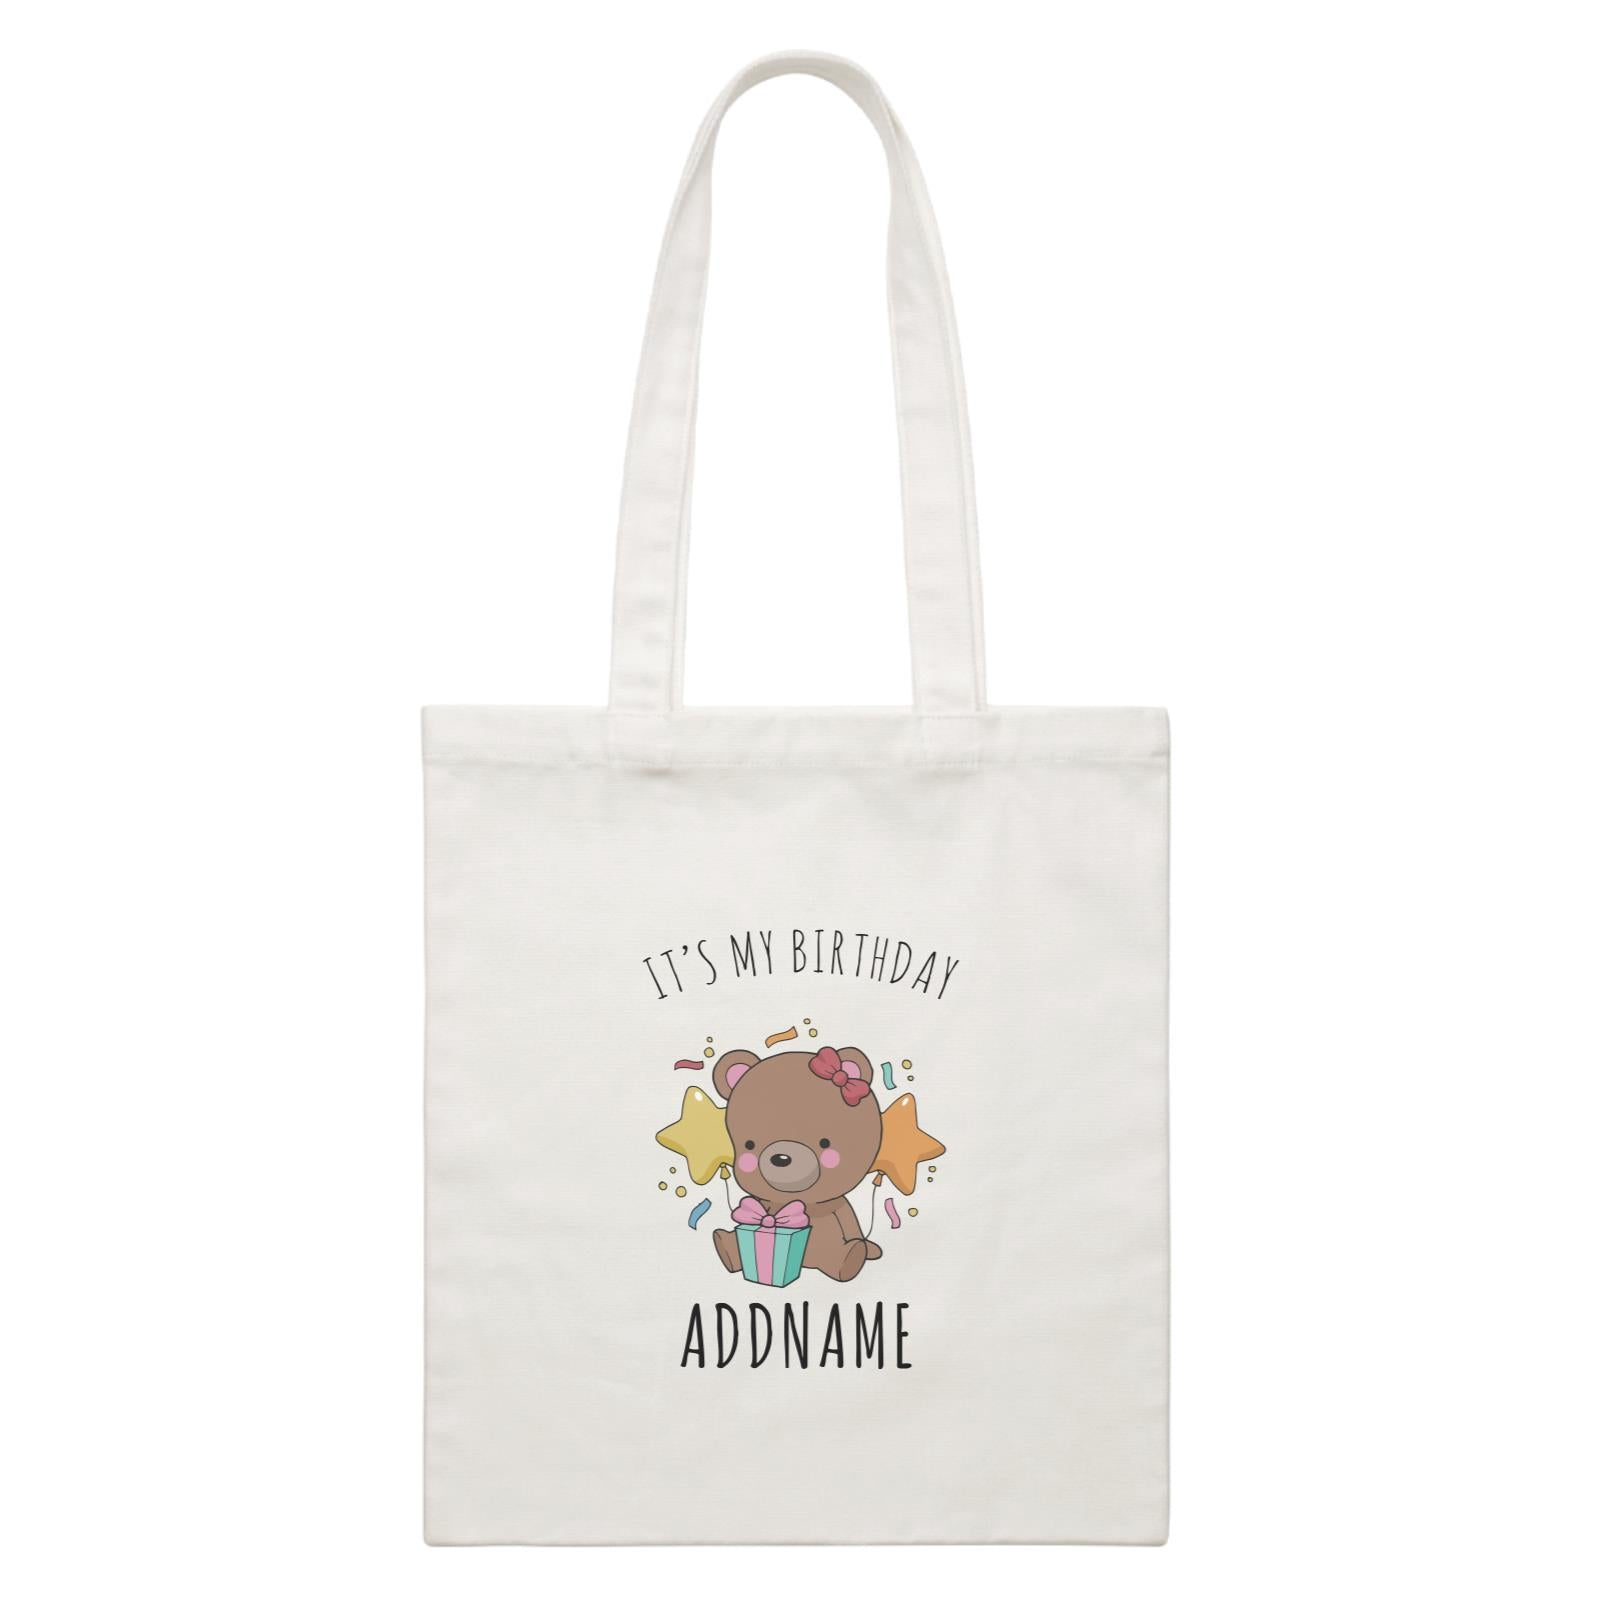 Birthday Sketch Animals Bear with Present It's My Birthday Addname White Canvas Bag